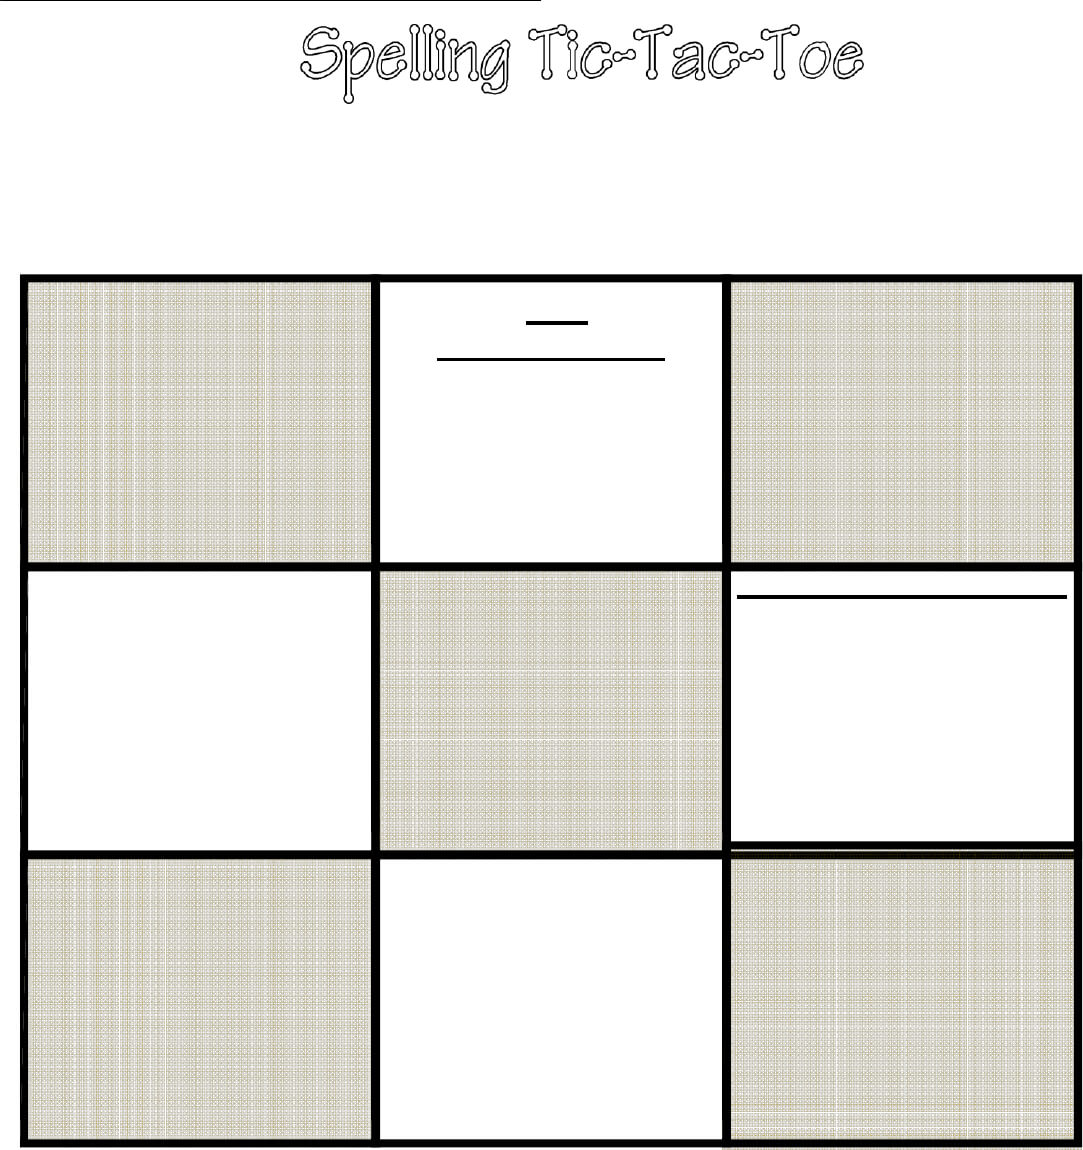 Tic Tac Toe Template In Word And Pdf Formats Throughout Tic Tac Toe Template Word